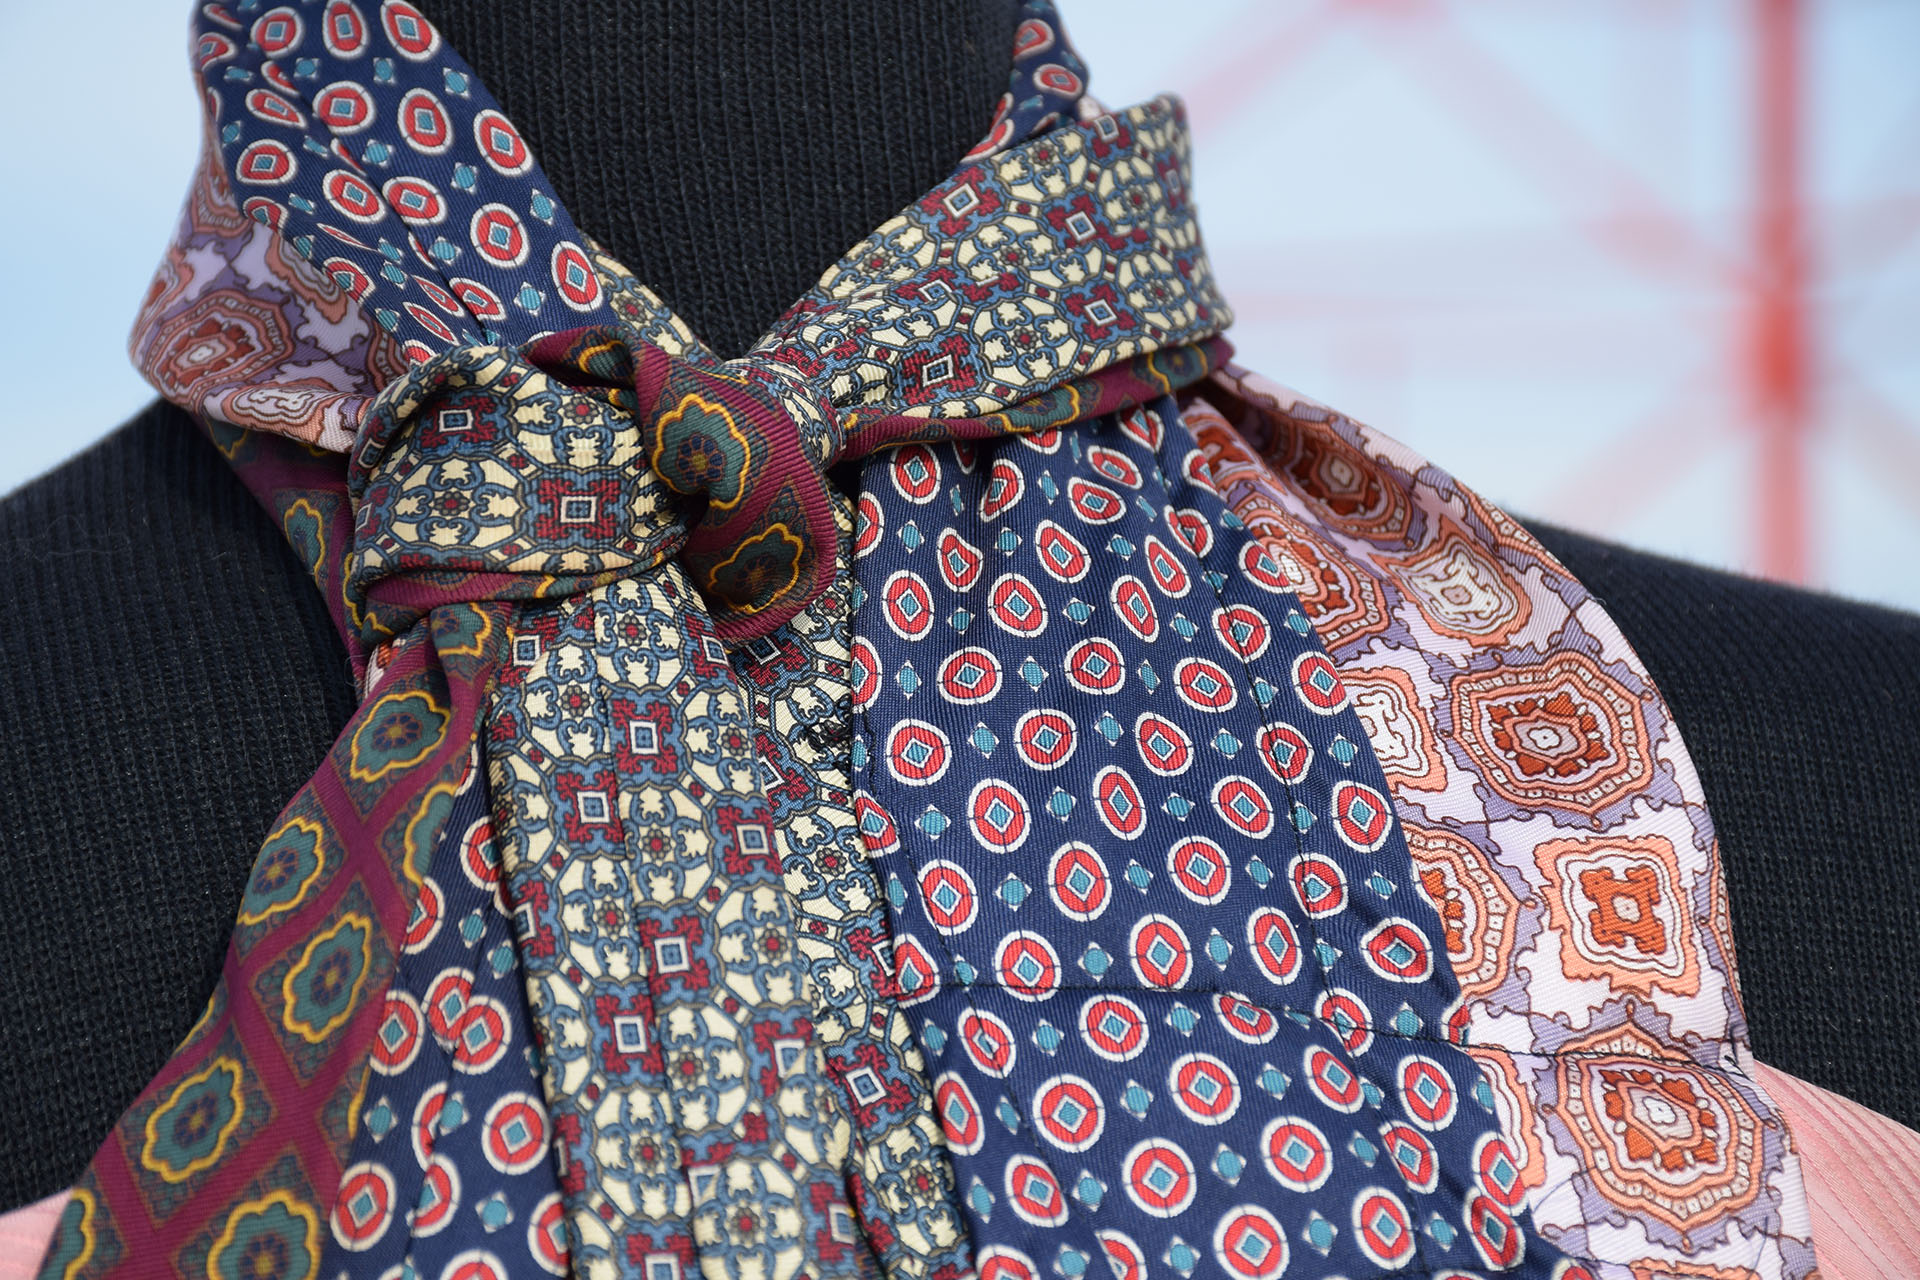 Detail on Tie dress